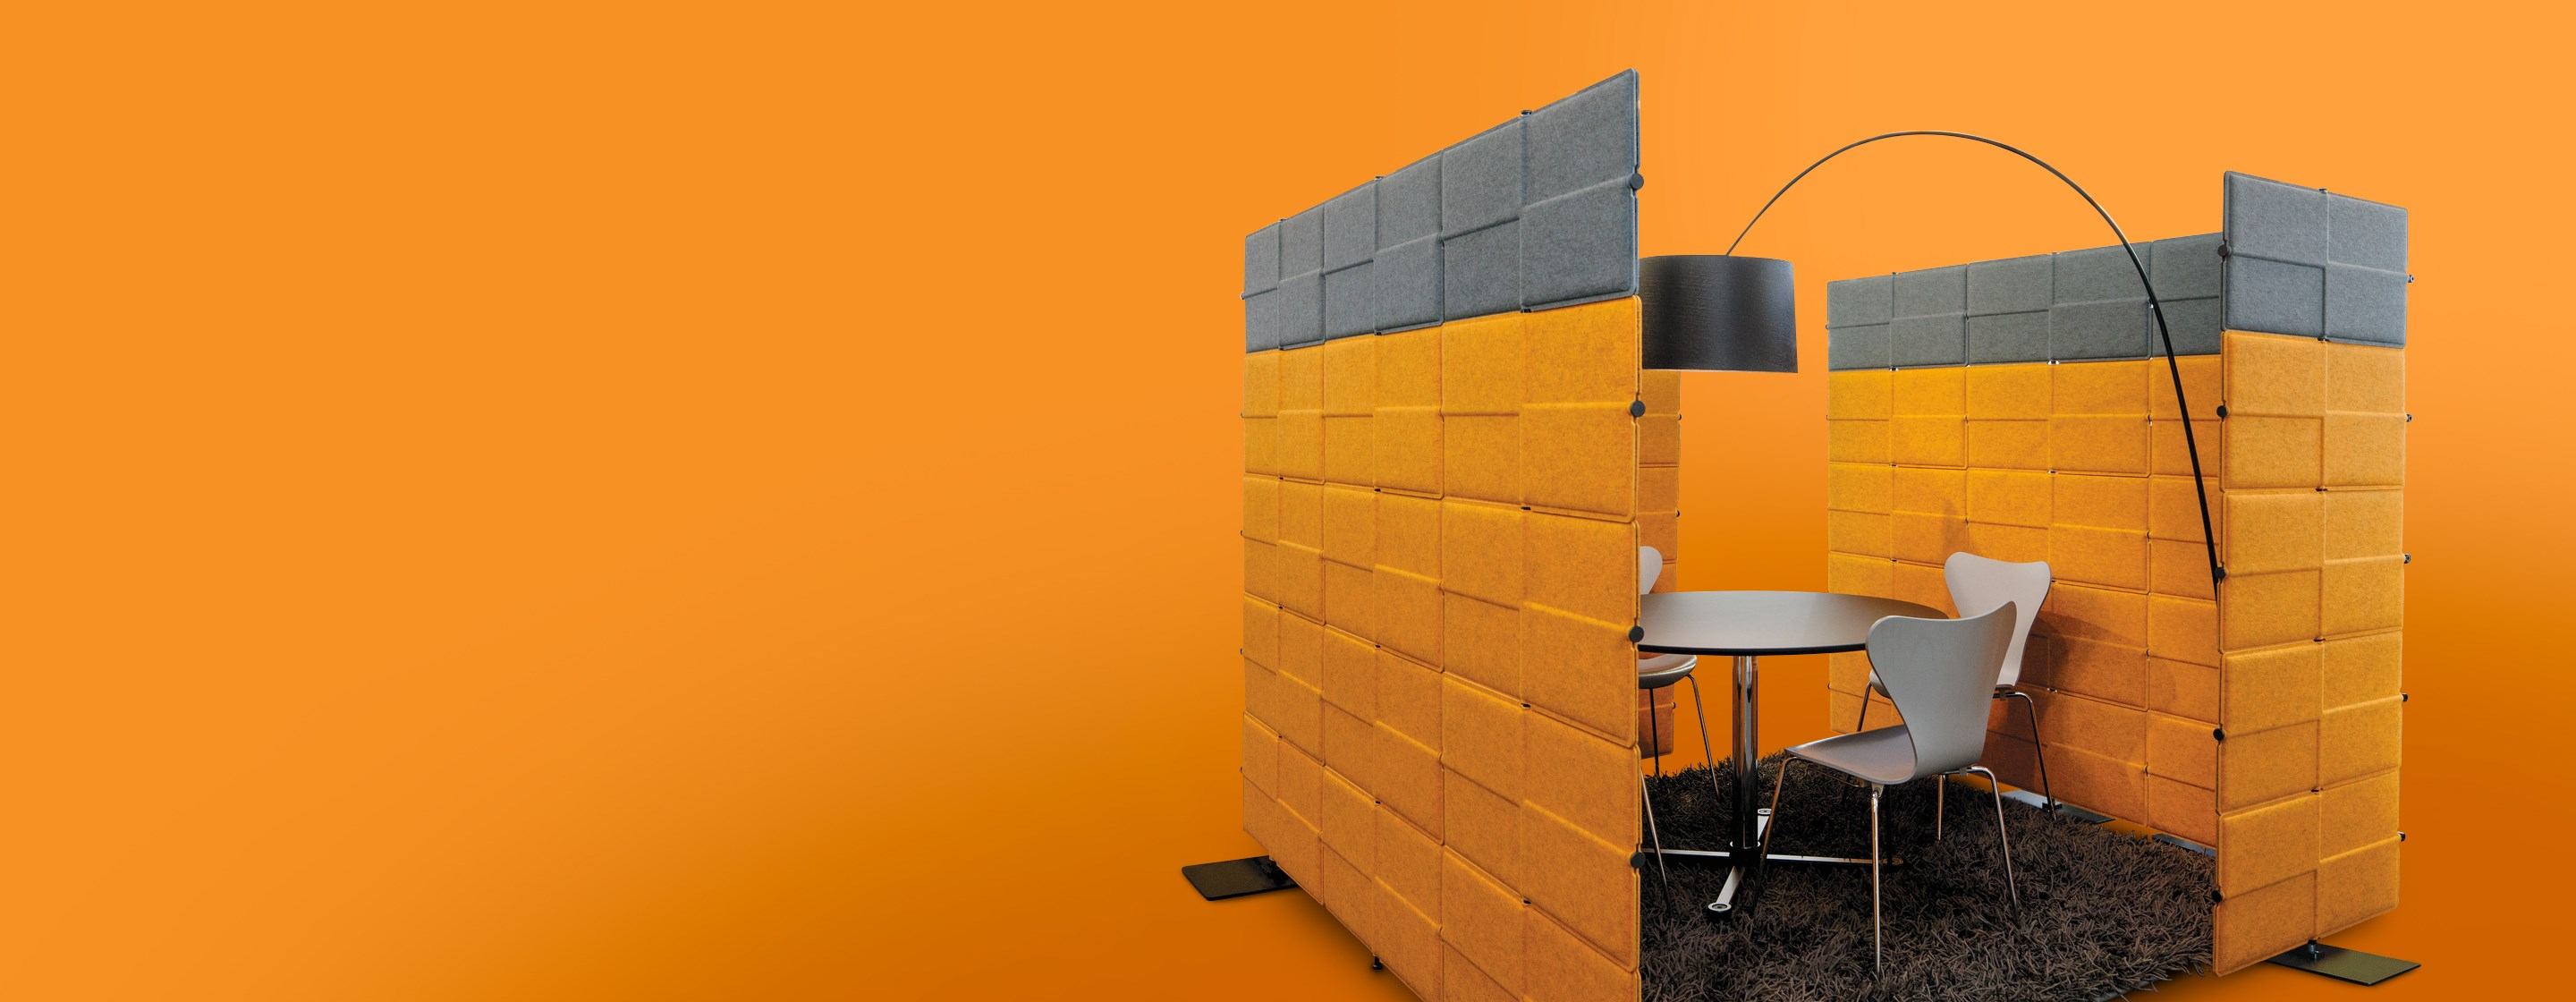 orange and grey acoustic USM Privacy Panels in a modern office breakout area